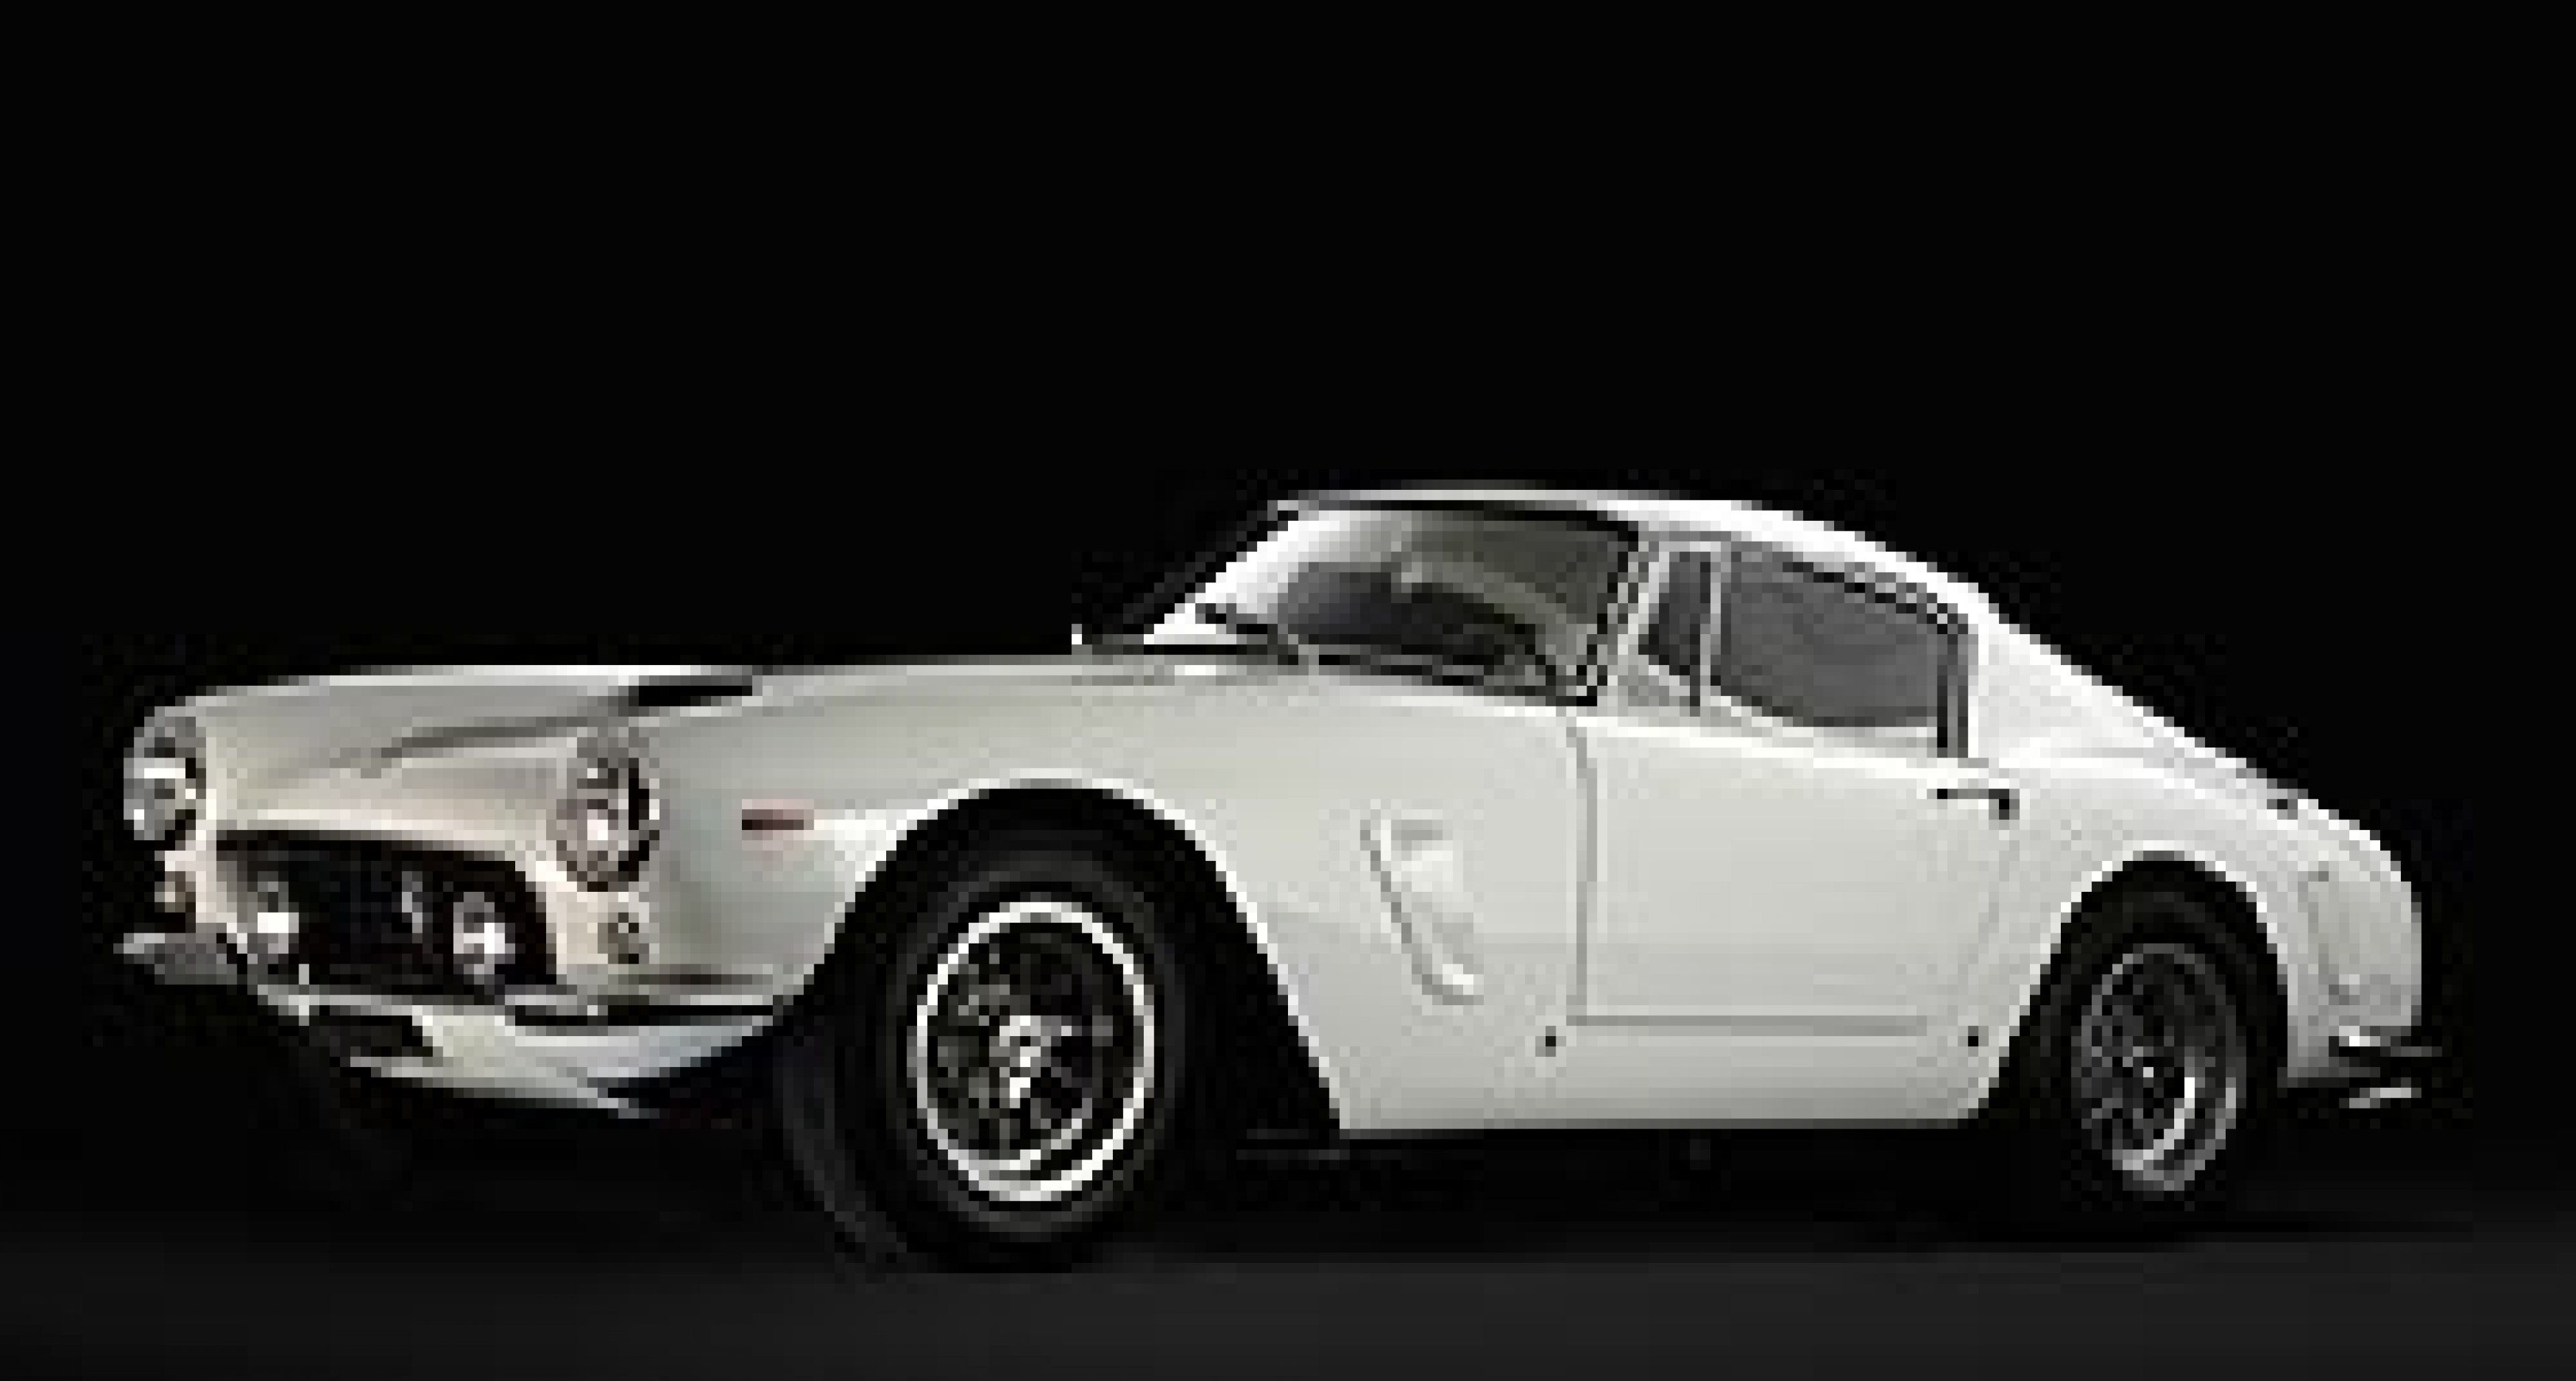 RM Auctions - 'Sporting Classics of Monaco' 1 May 2010 - Preview